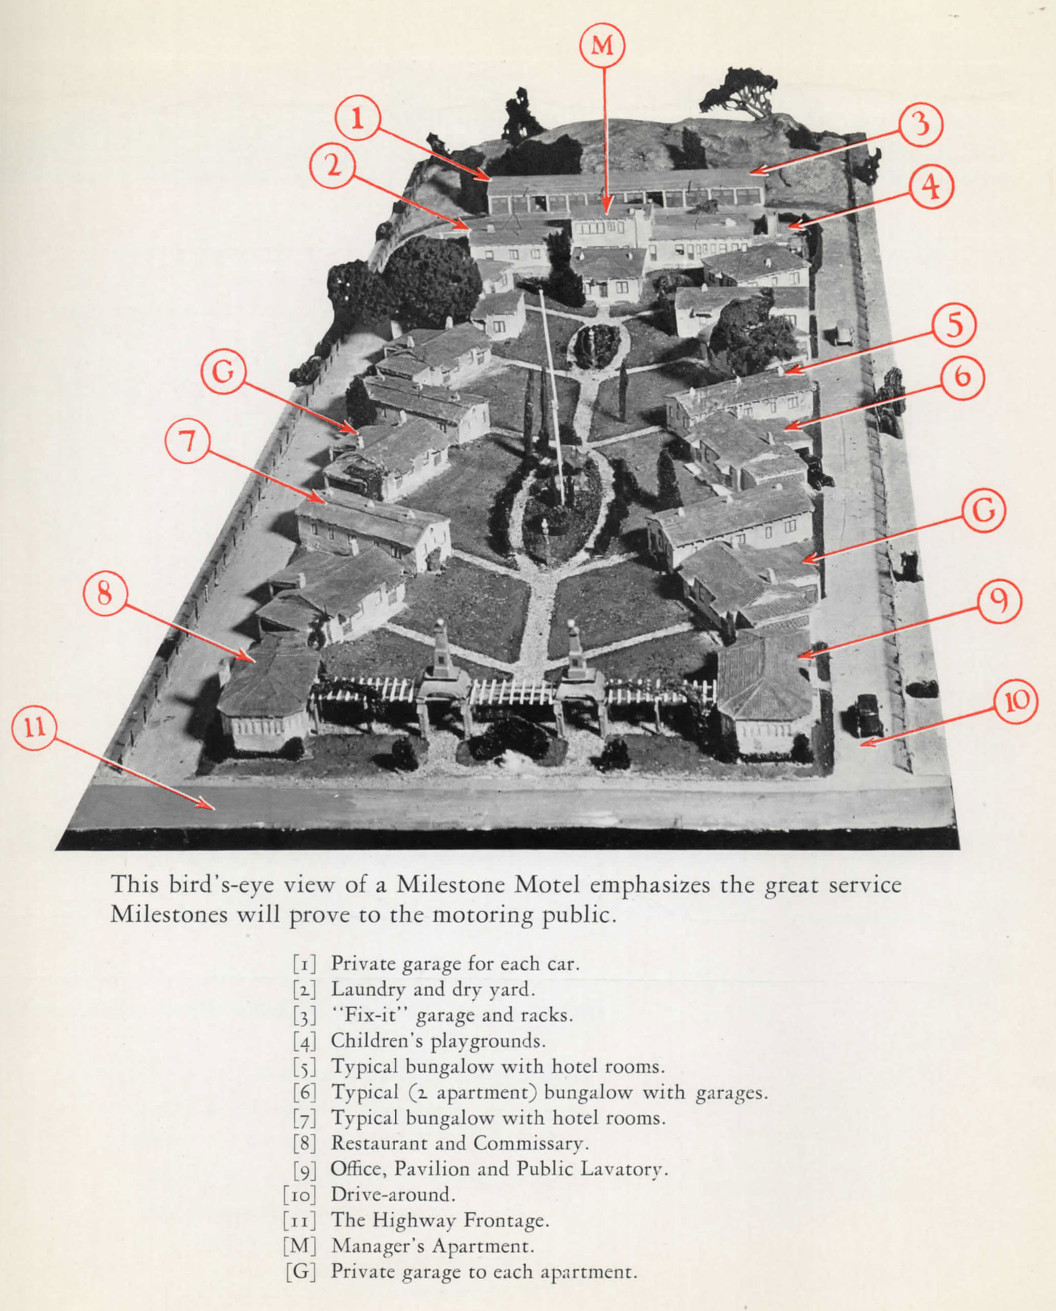 A bird's-eye view of a sample layout for the Milestone chain of motels, as envisioned by the Milestone Interstate Corp.